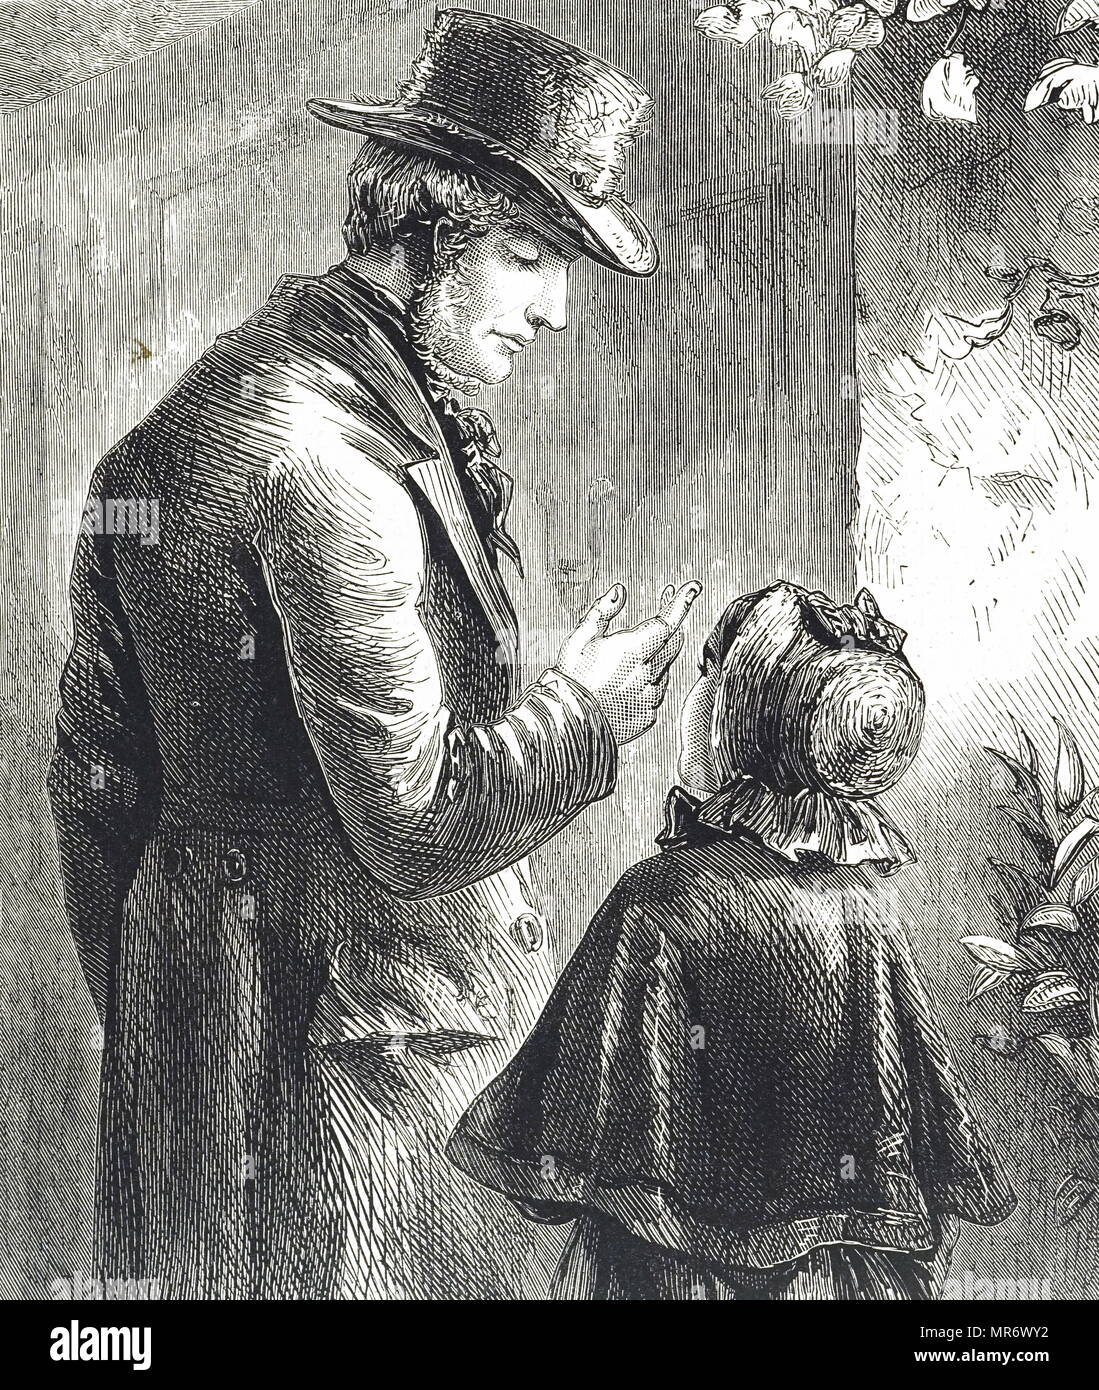 d15e008dc770e9 Engraving depicting a man wearing a beaver hat speaking with a little girl  wearing a bonnet